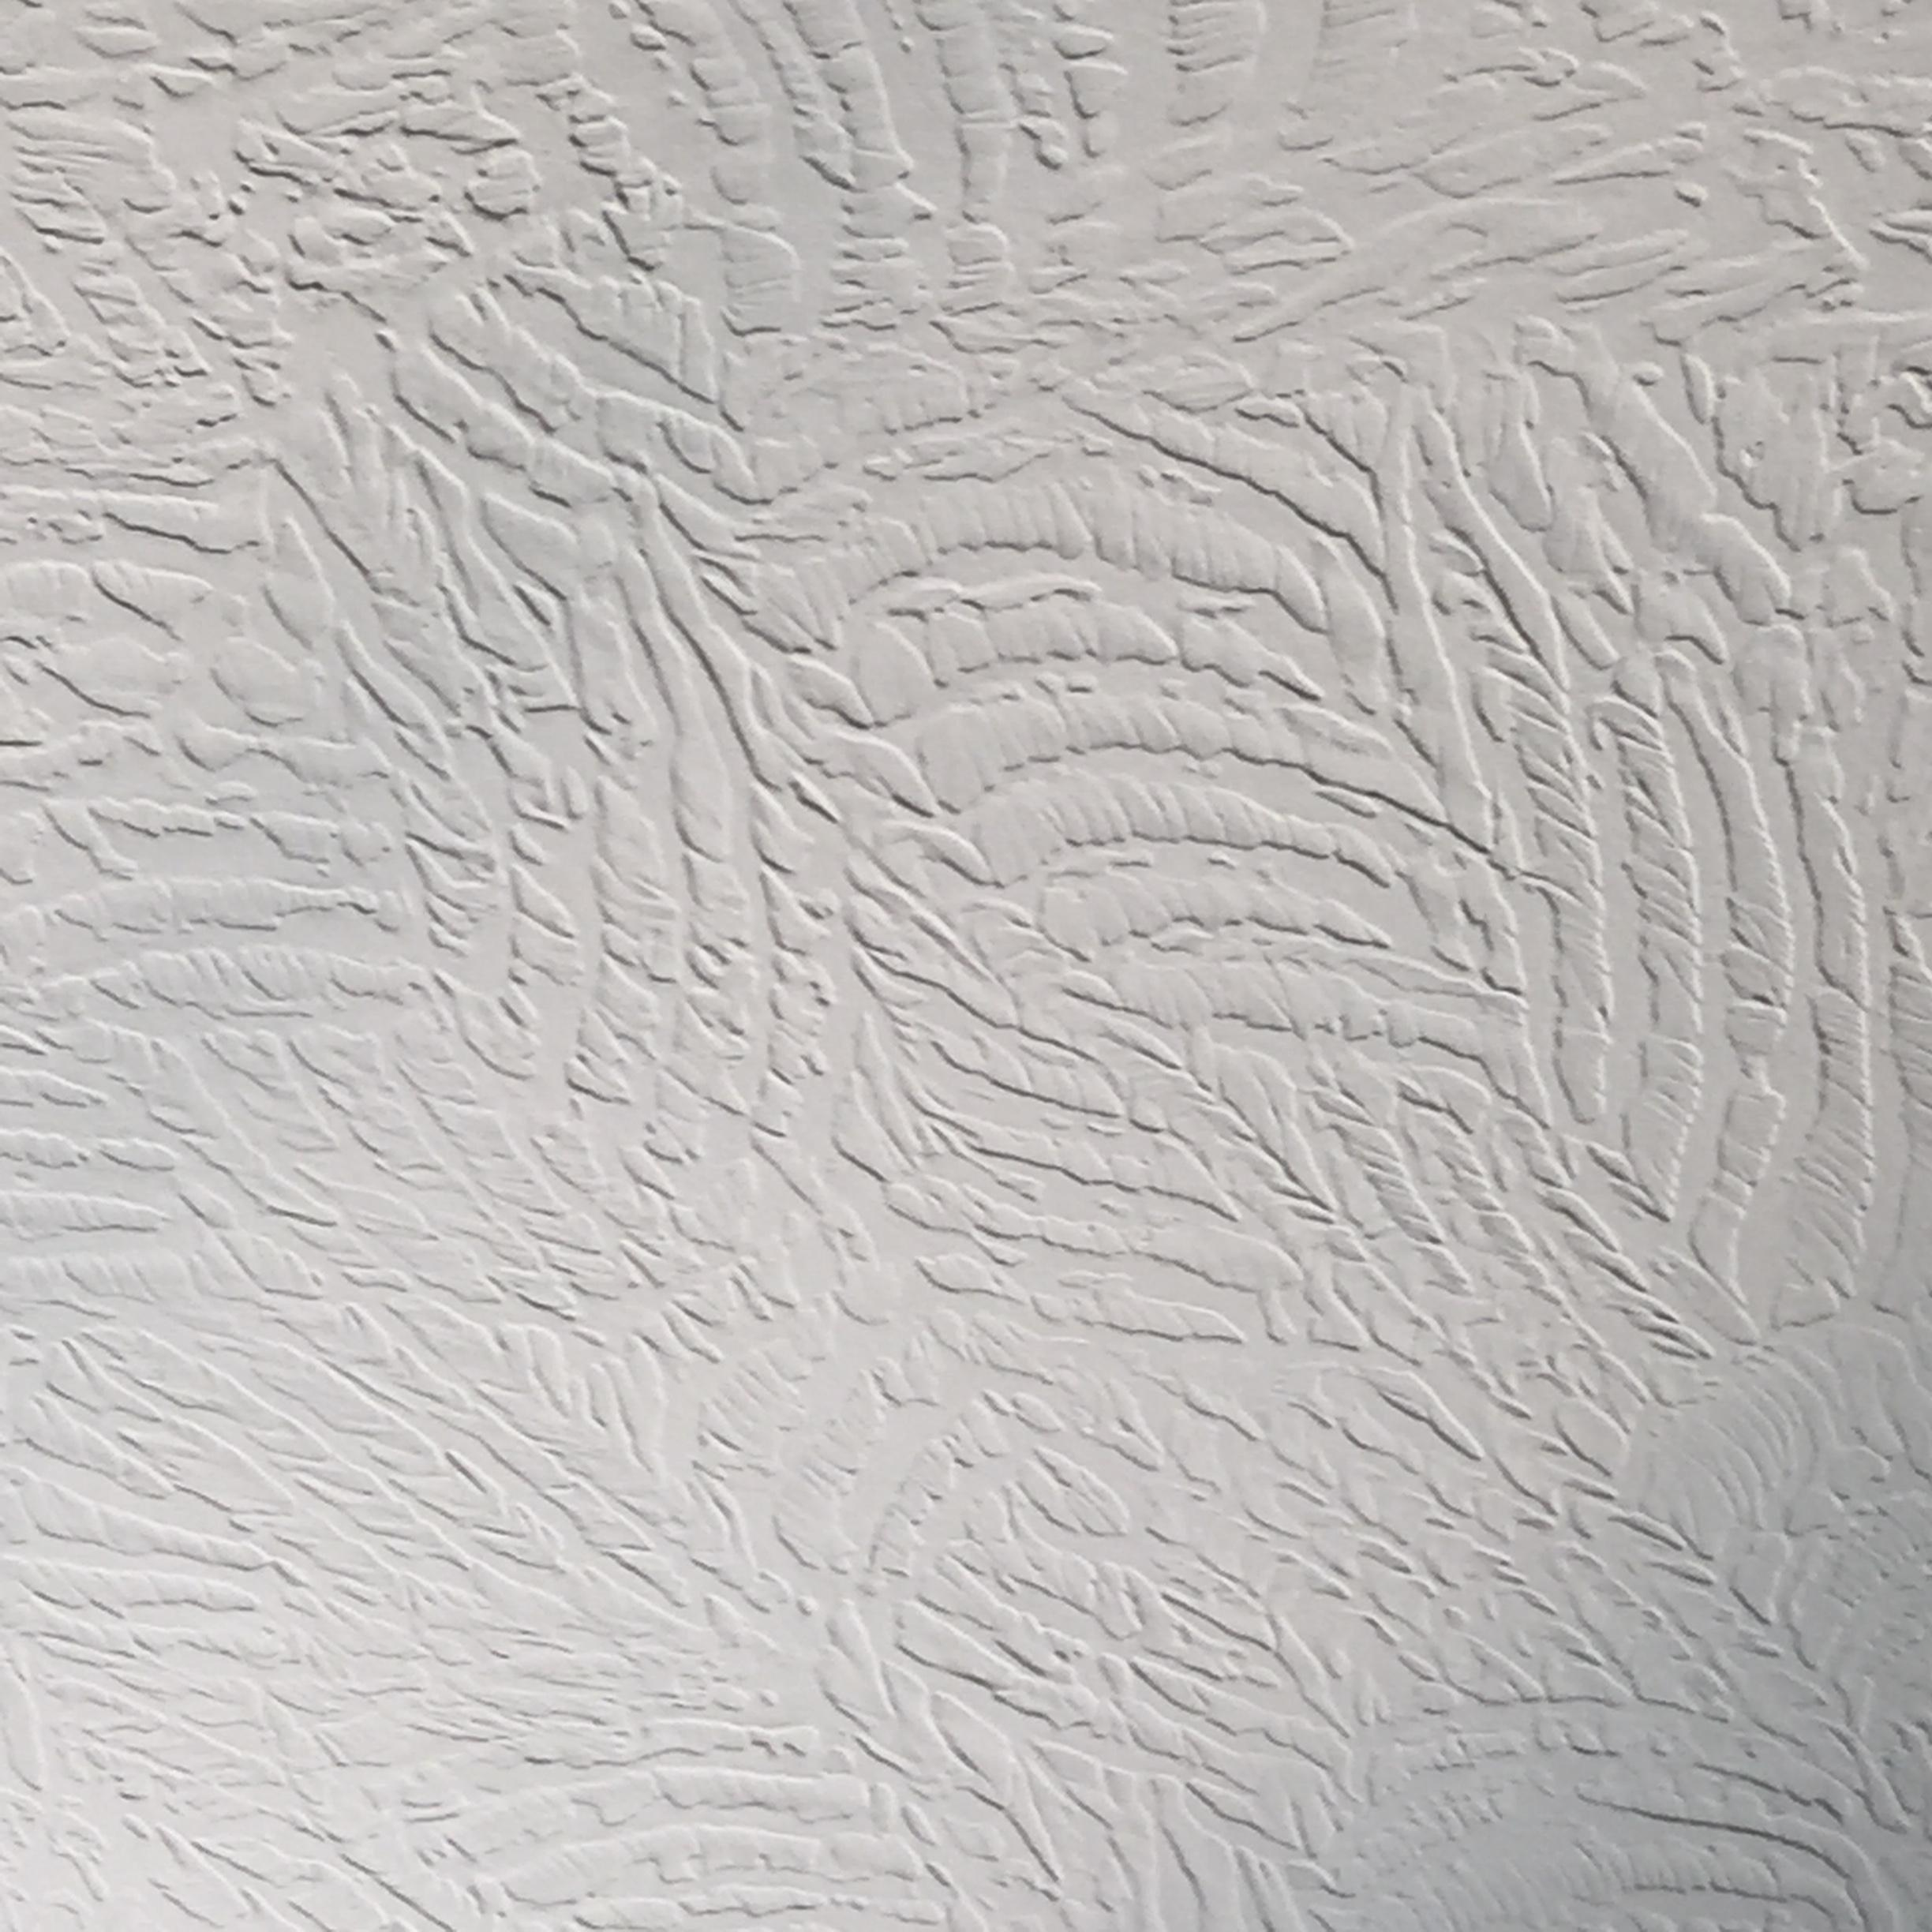 How do I match this ceiling texture?